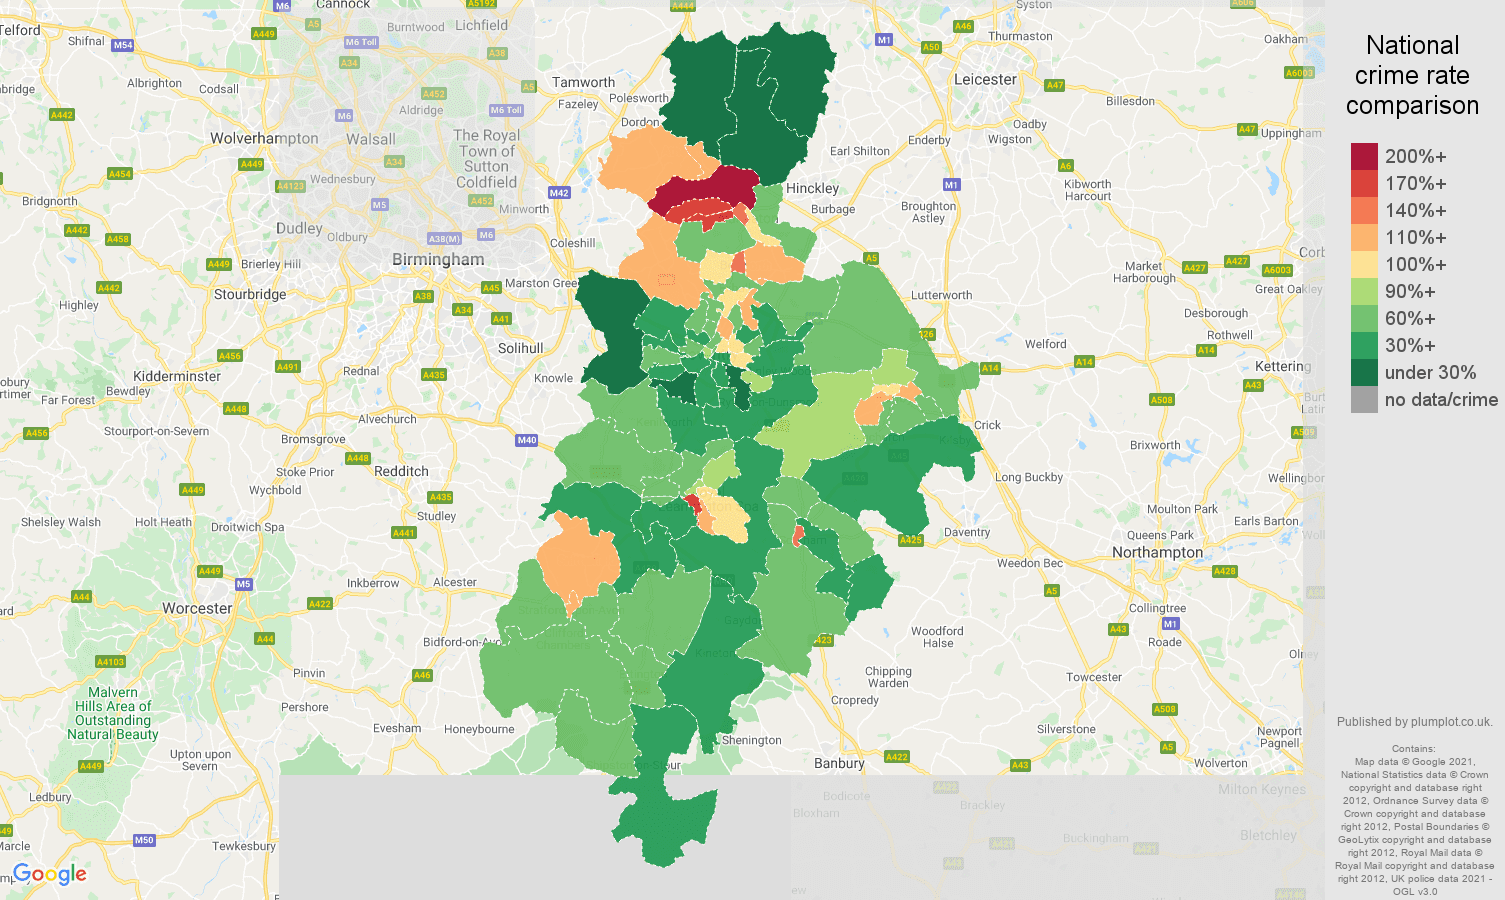 Coventry antisocial behaviour crime rate comparison map